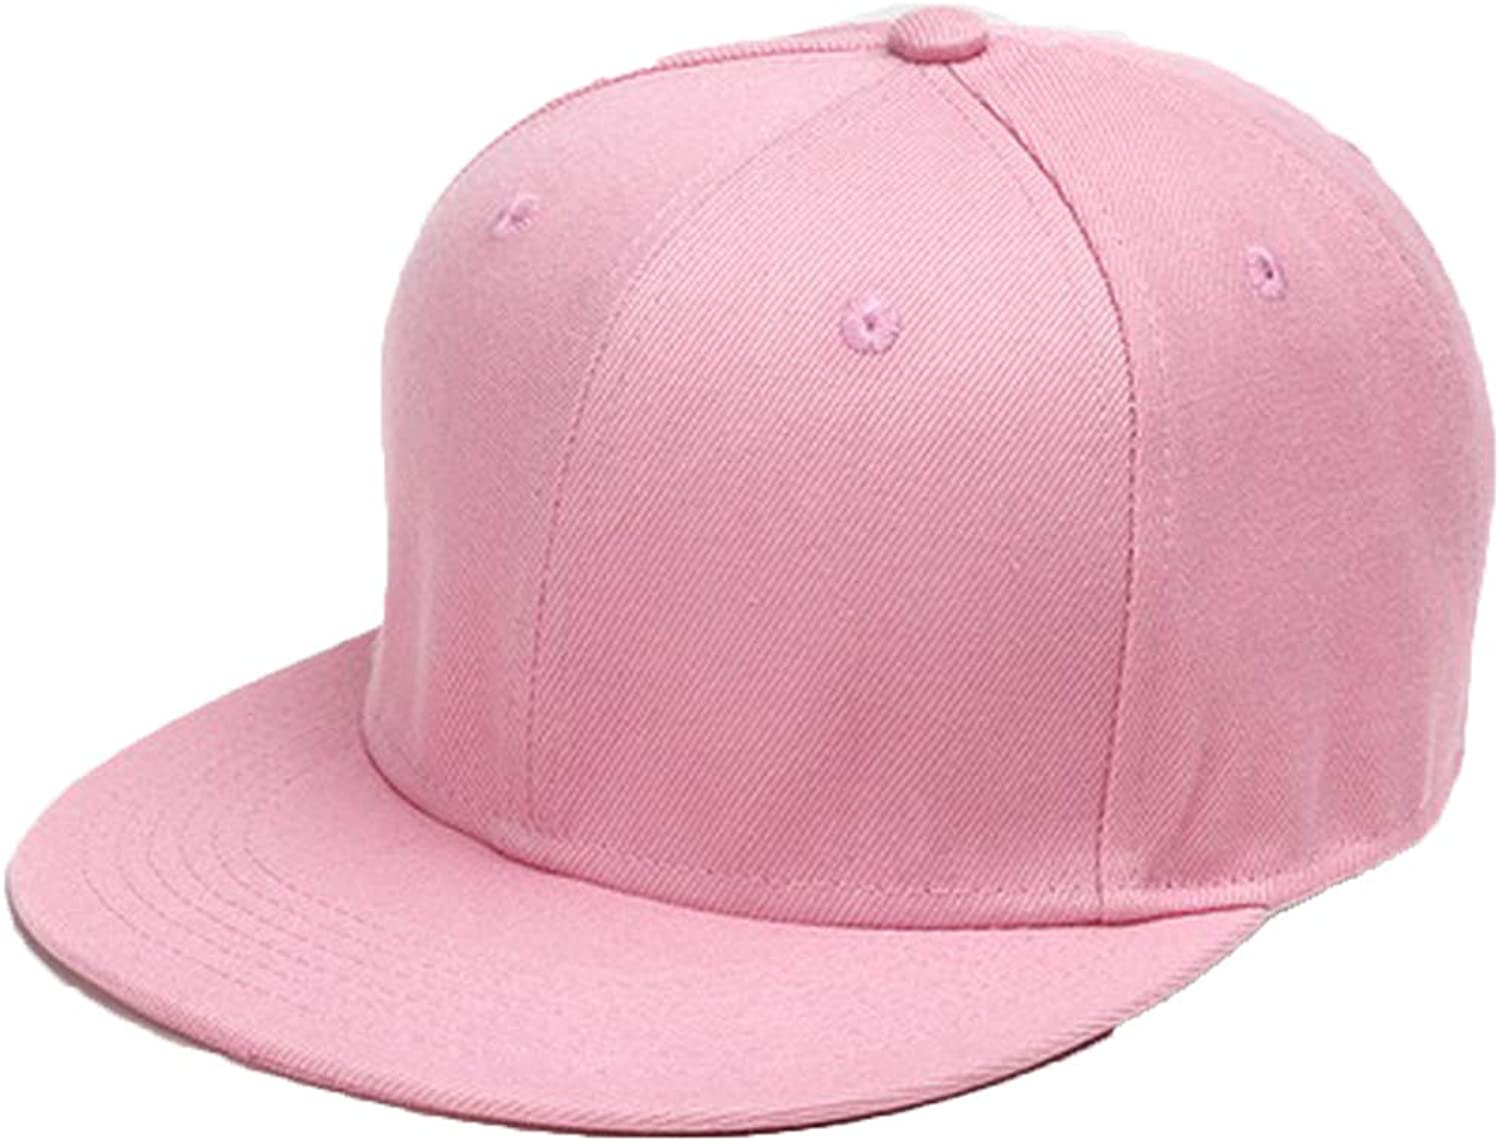 Hats Men Women Baseball Caps Snapback Solid Colors Cotton Bone European Style Classic Fashion Trend